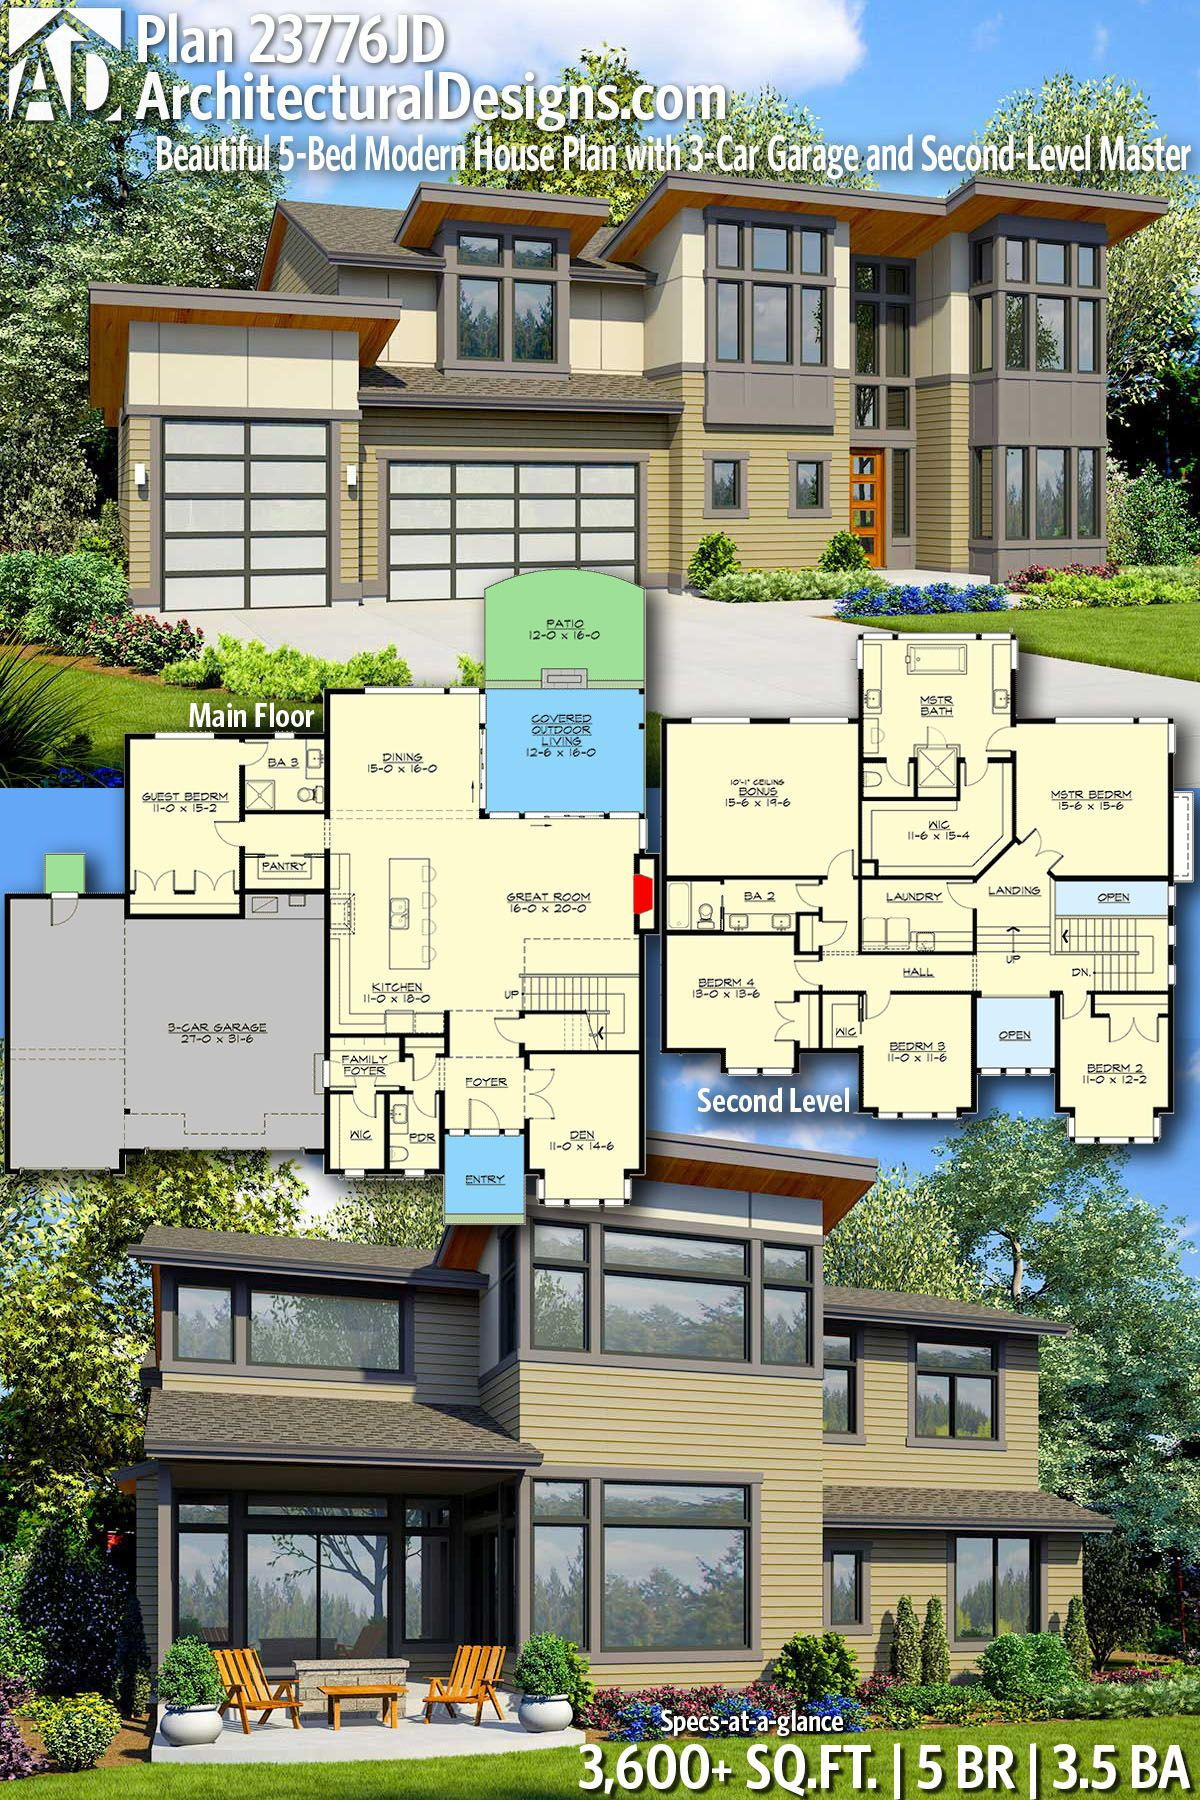 Plan 23776jd Beautiful 5 Bed Modern House Plan With 3 Car Garage And Second Level Master Modern House Plans House Plans Modern House Plan